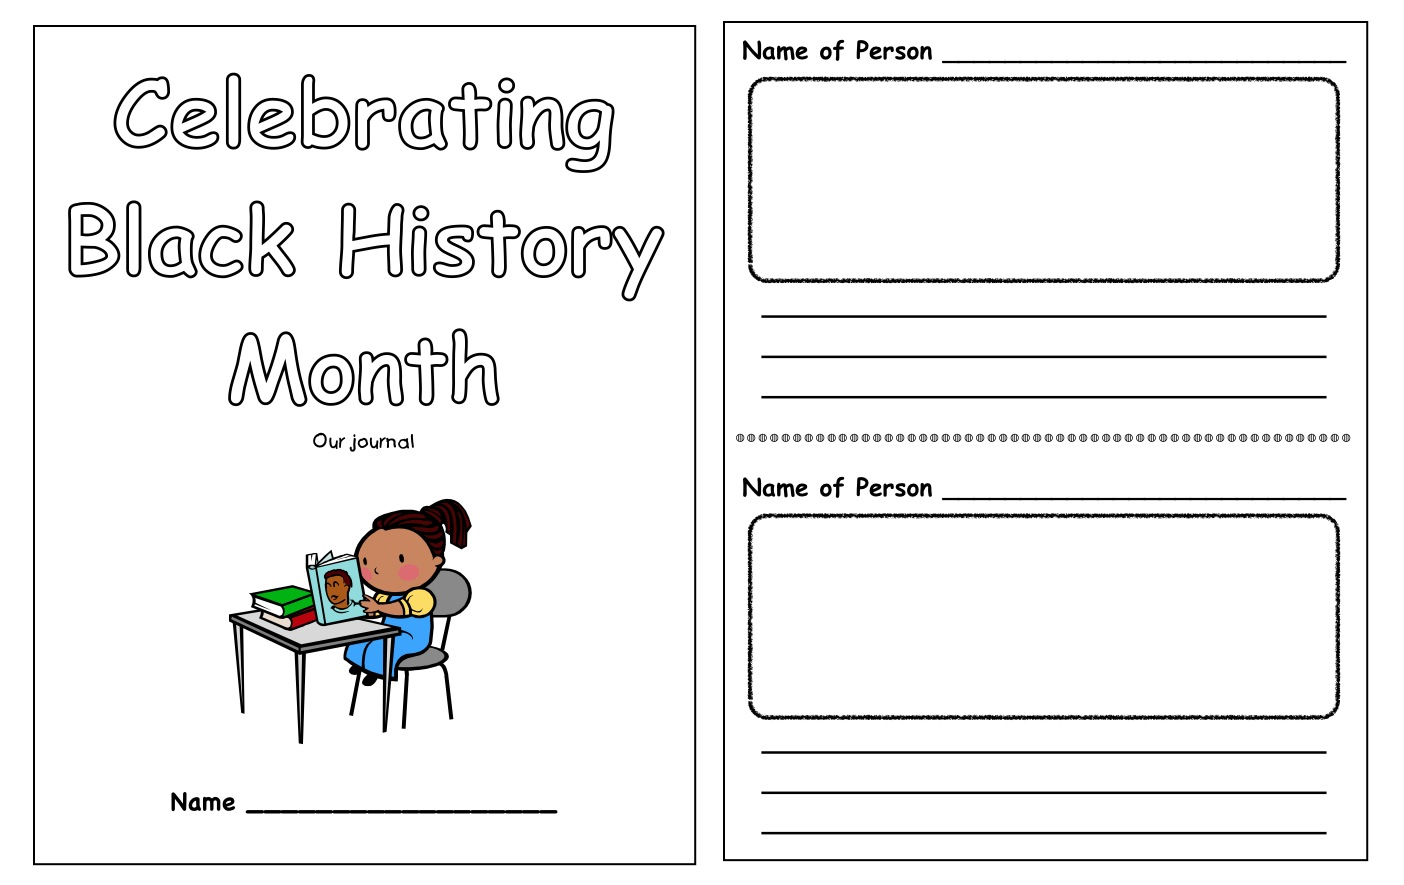 Worksheets Black History Month Worksheets workshop classroom mlk jr quote and black history month our jounal